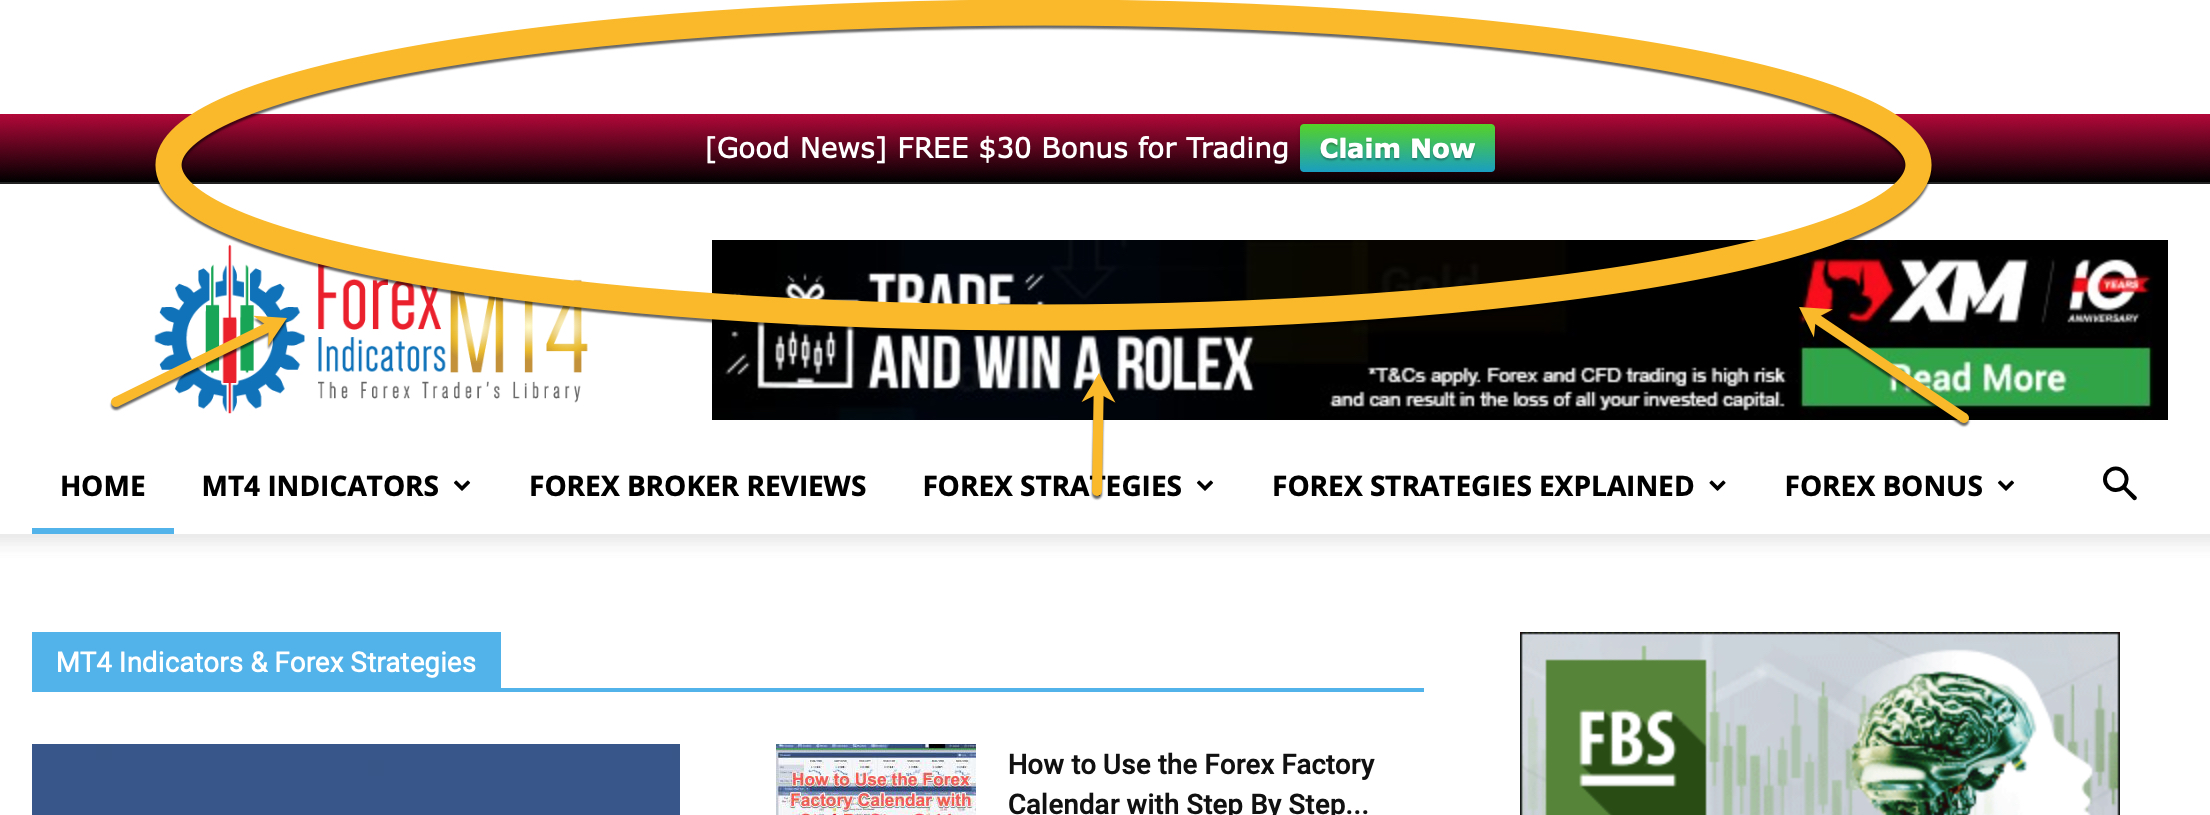 Forex Notification Bar Ads